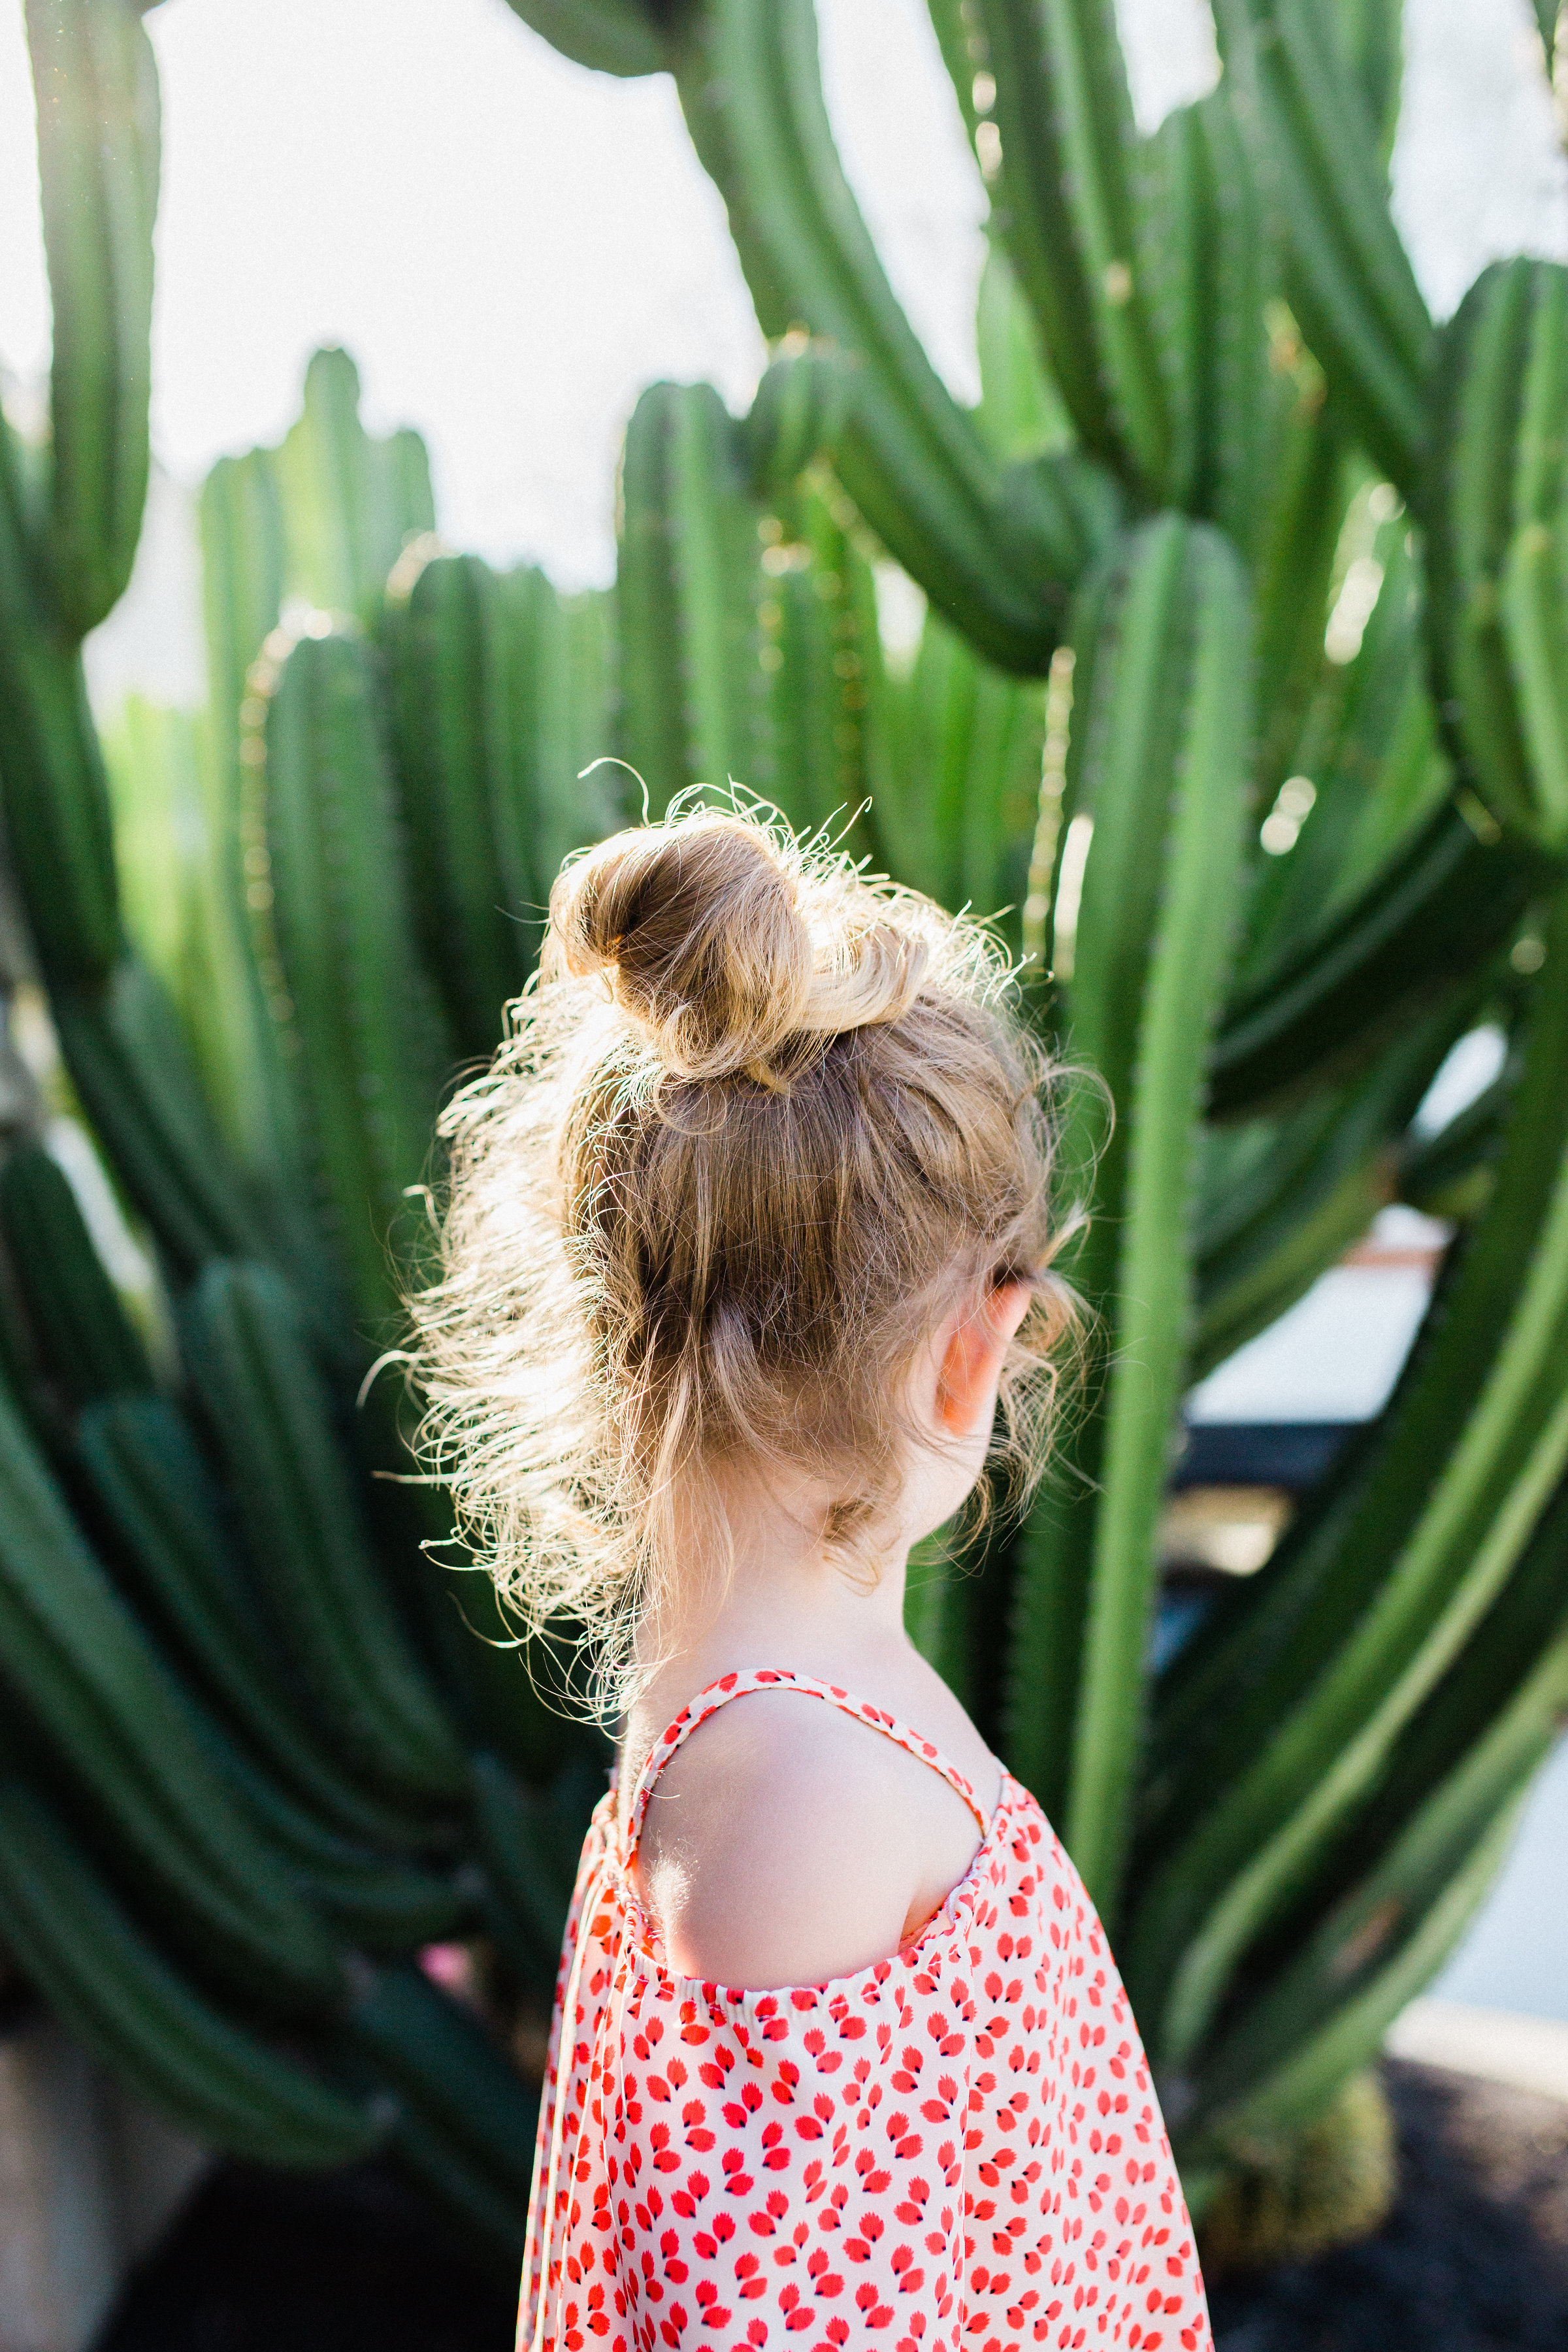 cami_palm-springs_los-angeles-child-and-family-photography-9.jpg